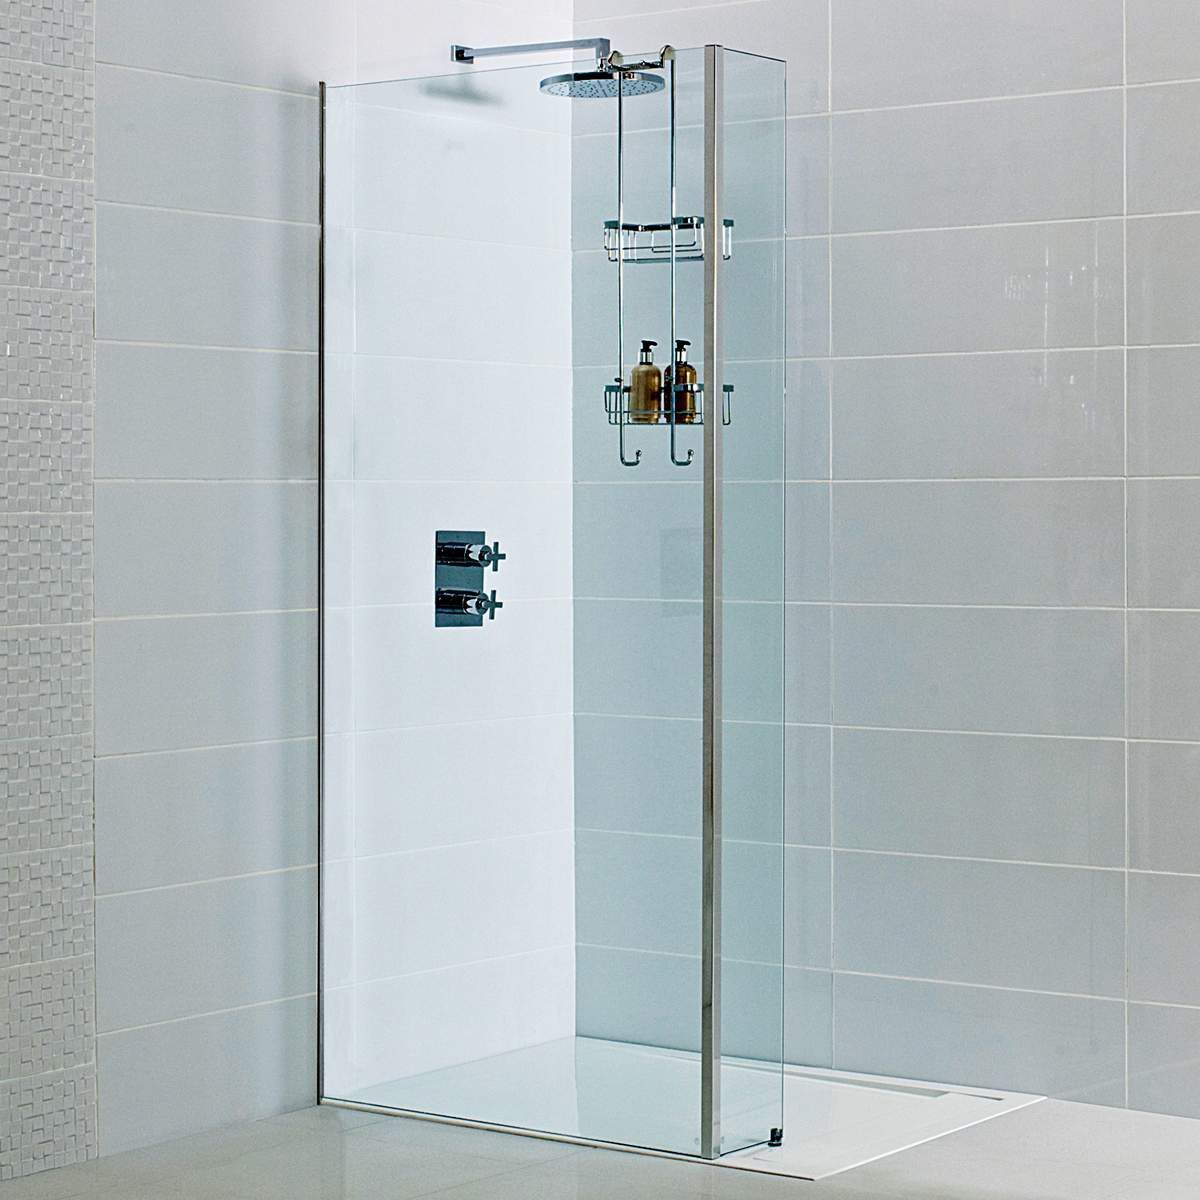 Roman Decem Wetroom Panel With Concealed Wall Profile Corner Shower Enclosures Neo Angle Shower Enclosures Shower Panels